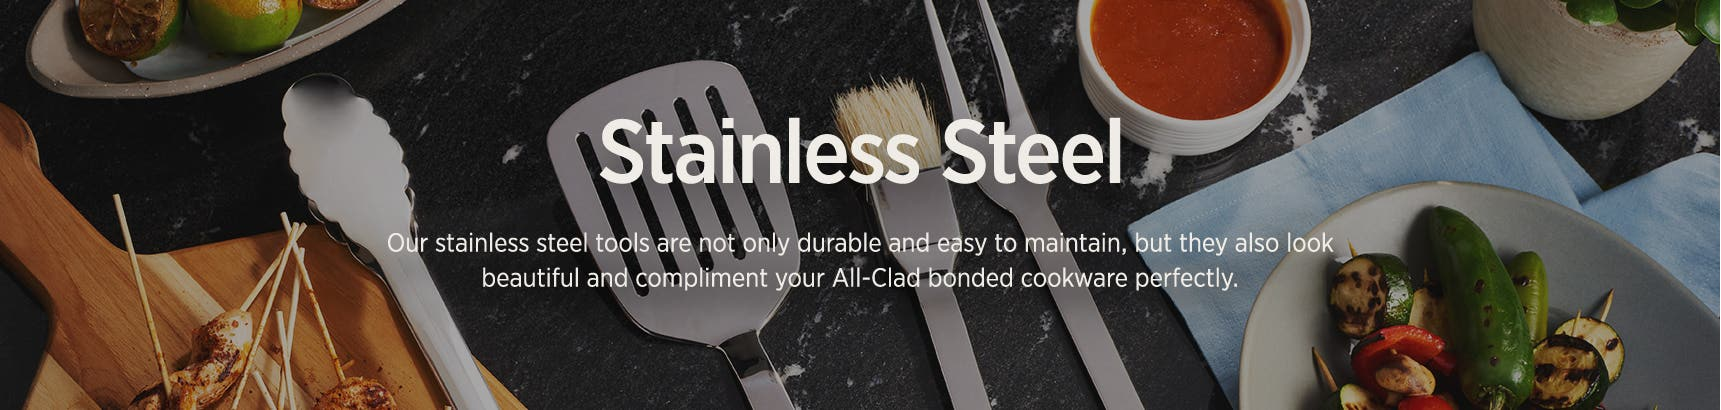 Stainless